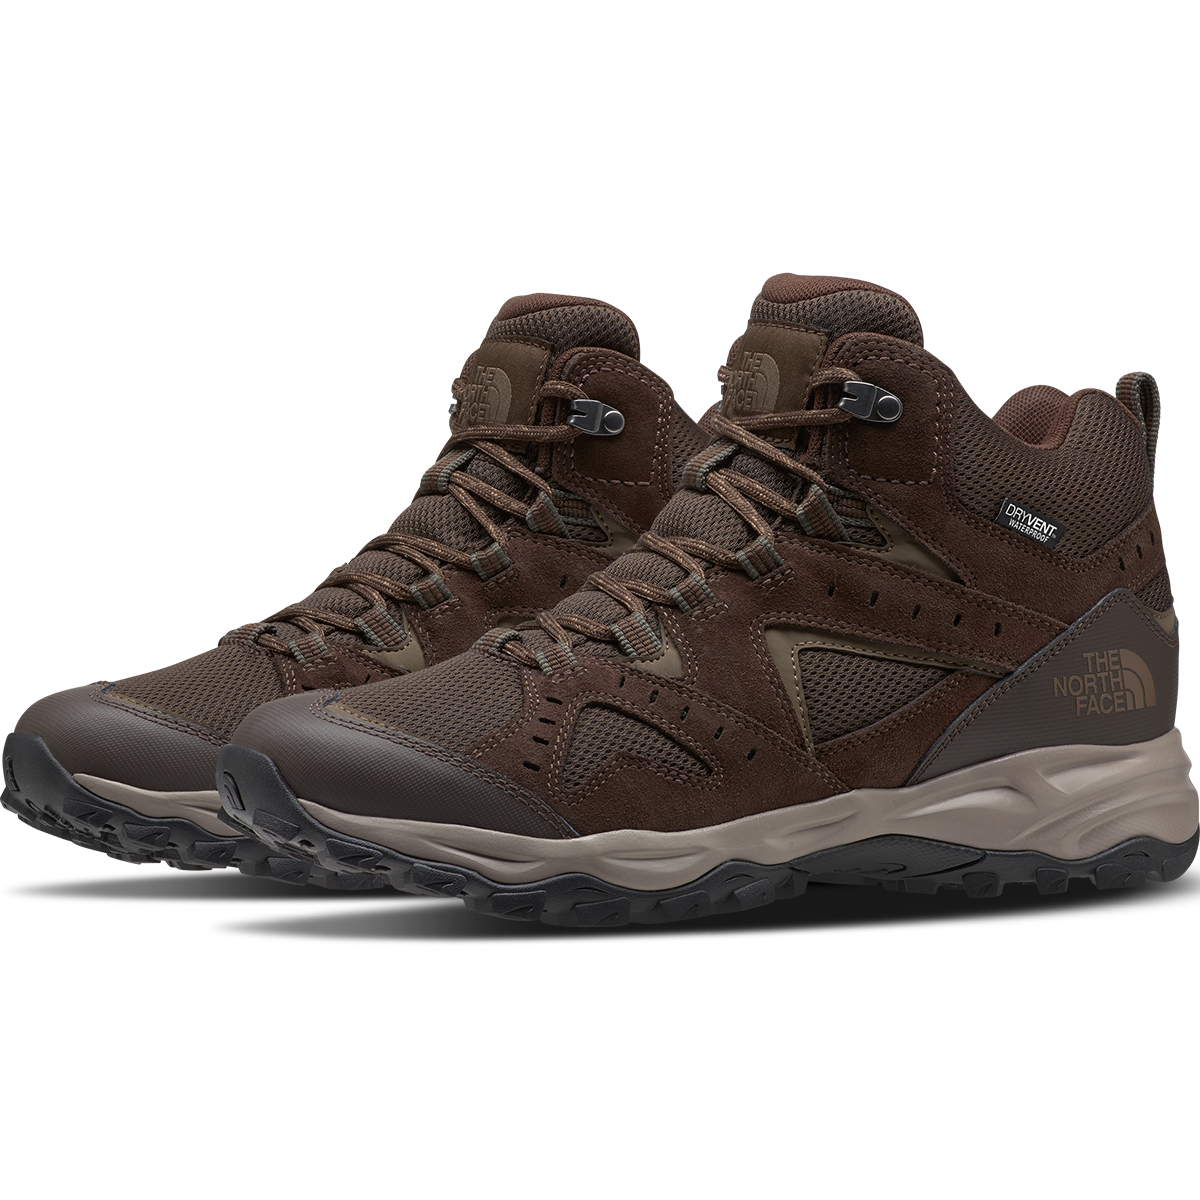 The North Face Men's Trail Edge Waterproof Hiking Shoes - Brown, 10.5